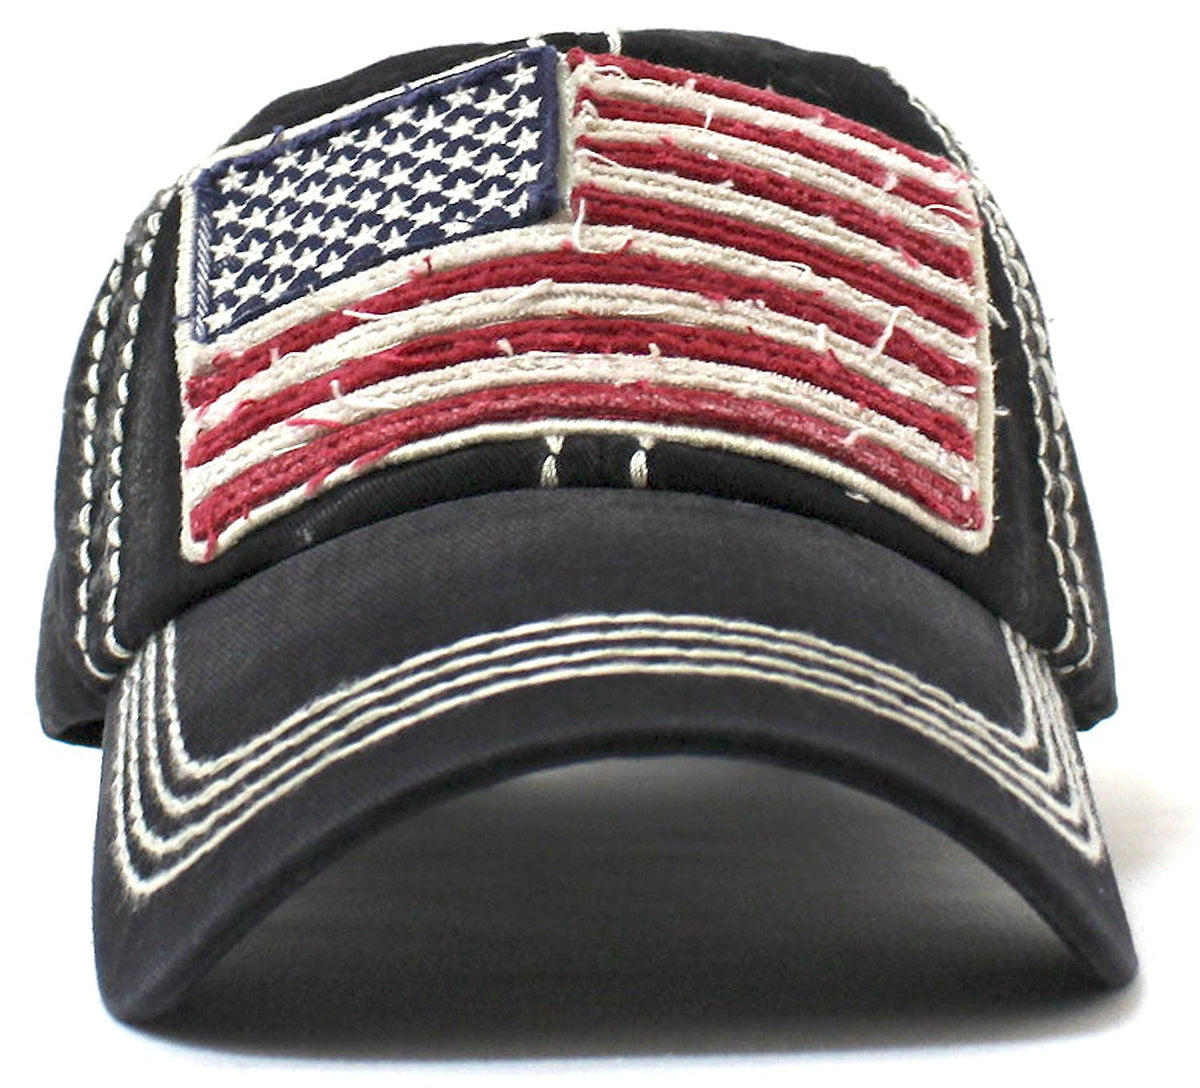 Oversized Vintage AMERICAN FLAG Patch Embroidery Baseball Cap - Caps 'N Vintage